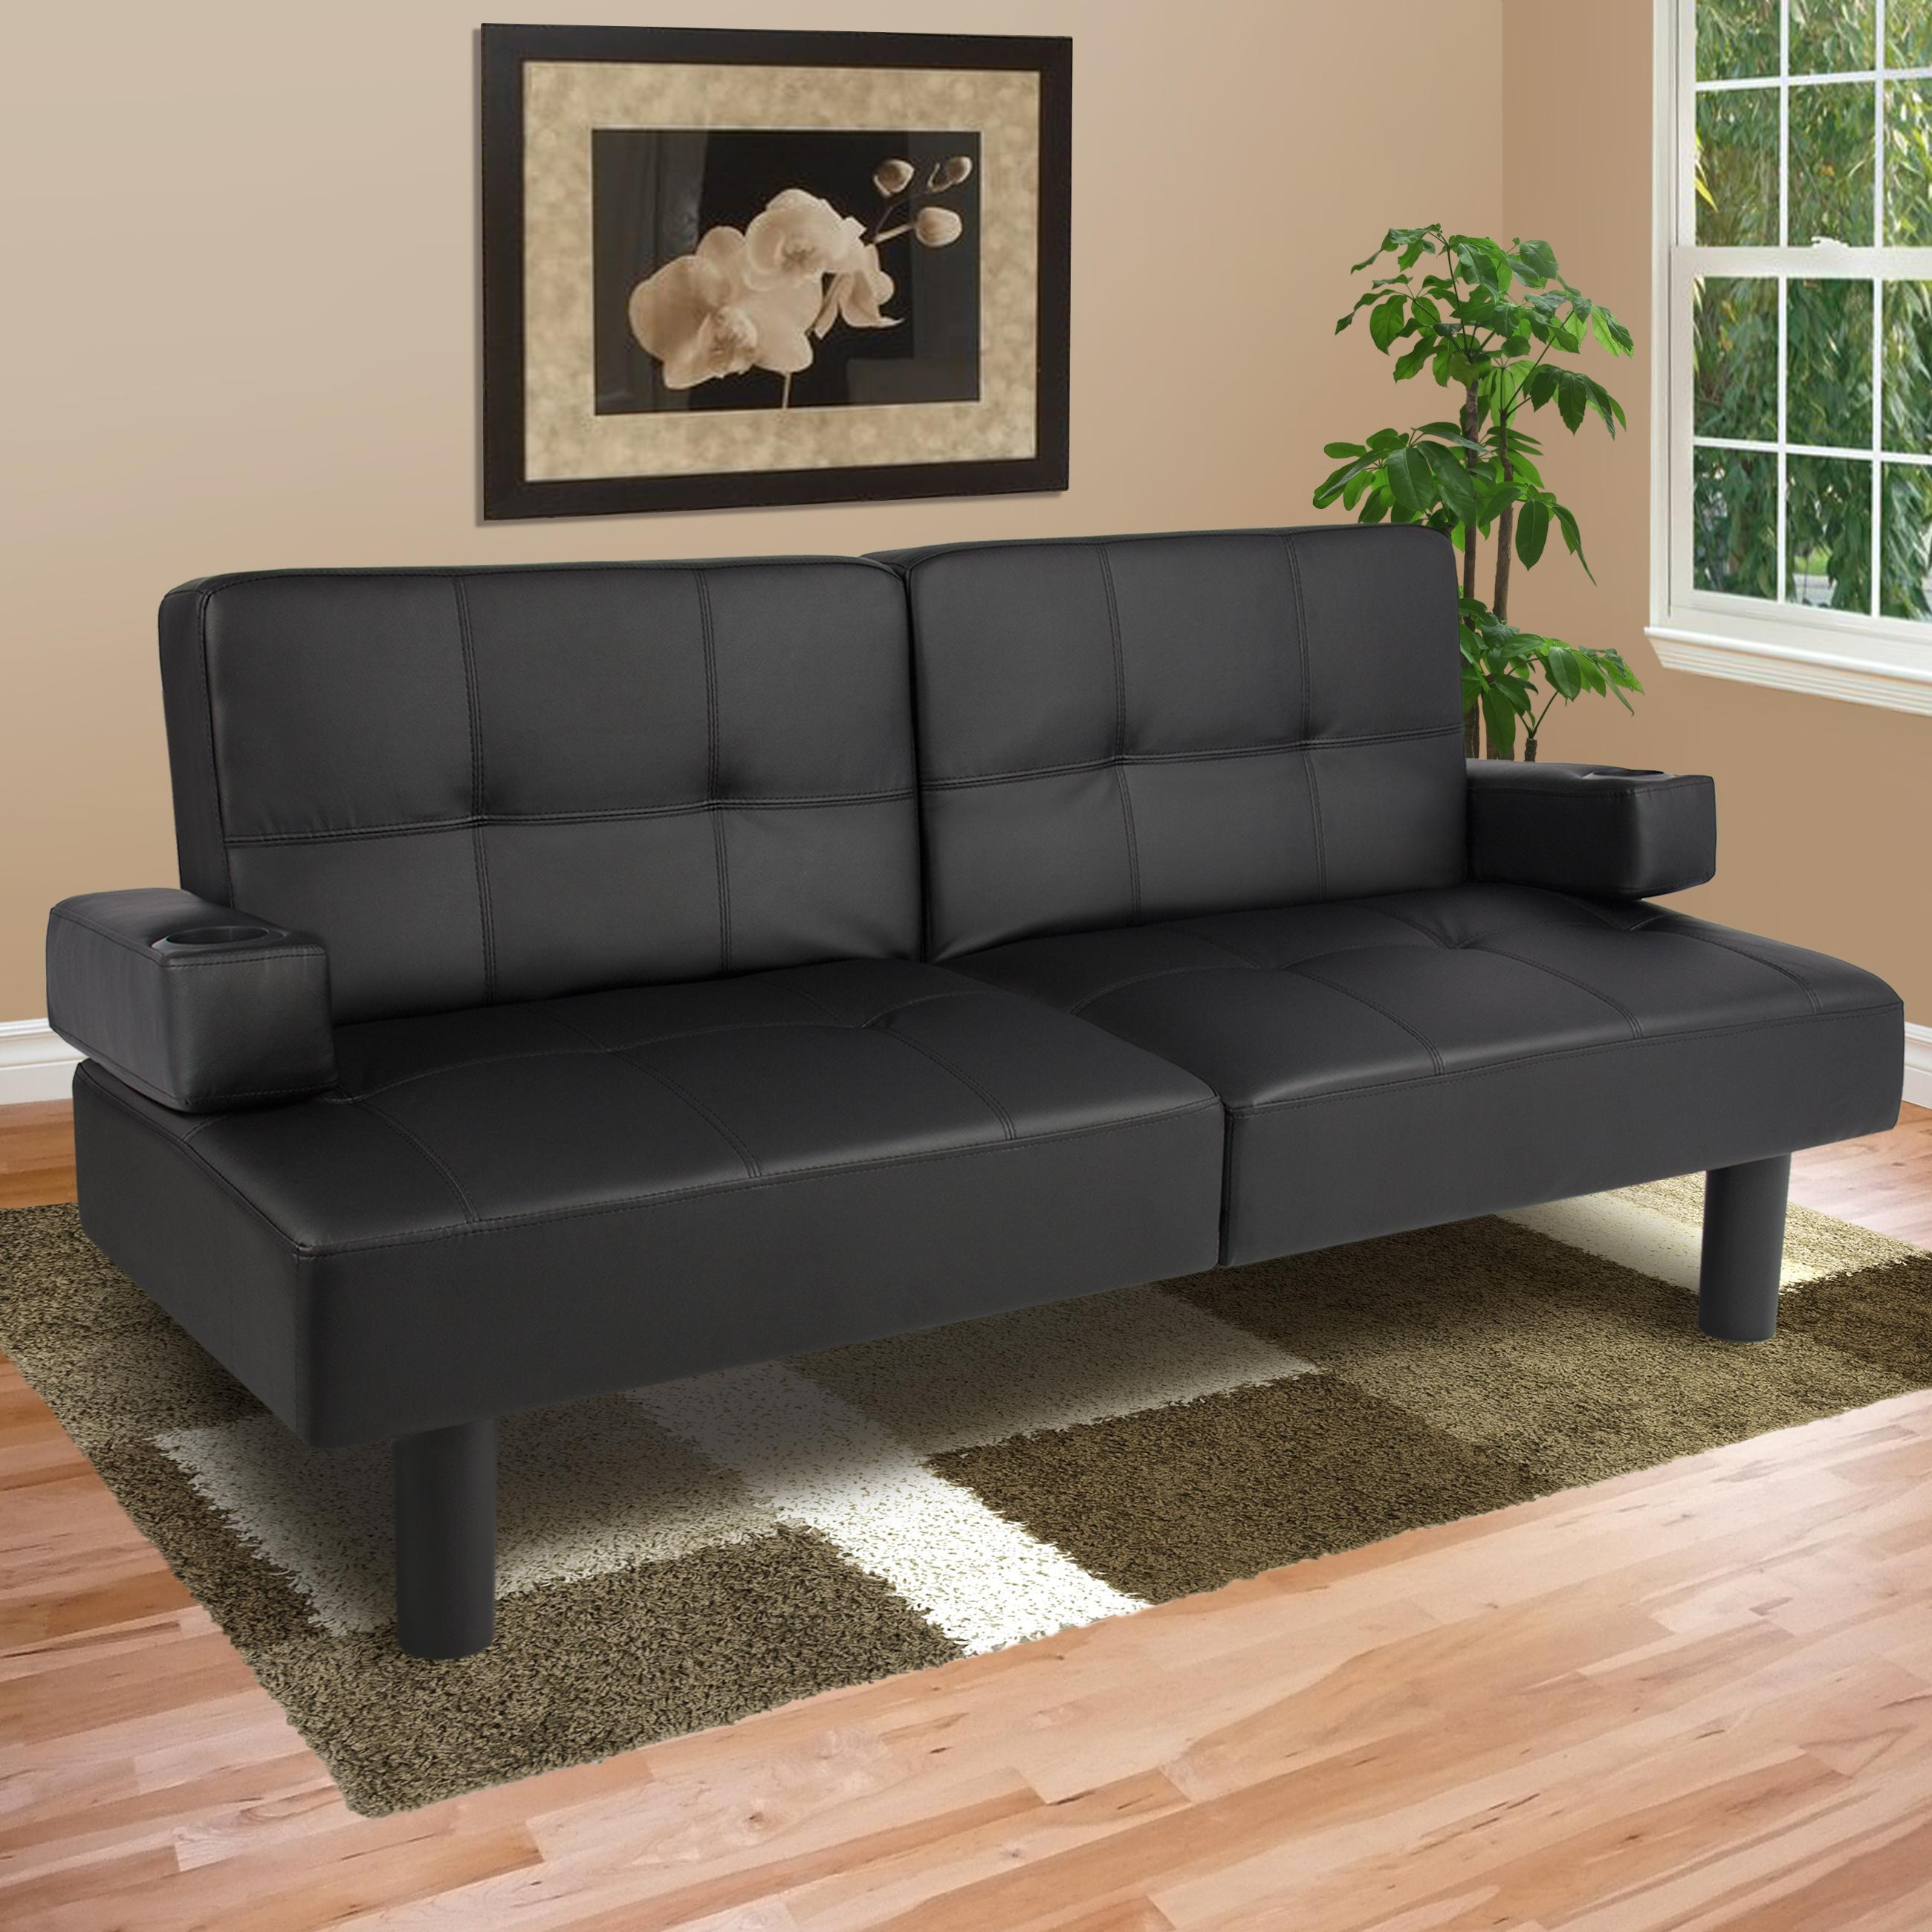 Best Choice Products Modern Leather Futon Sofa Bed Fold Up & Down Intended For Convertible Futon Sofa Beds (Image 5 of 20)